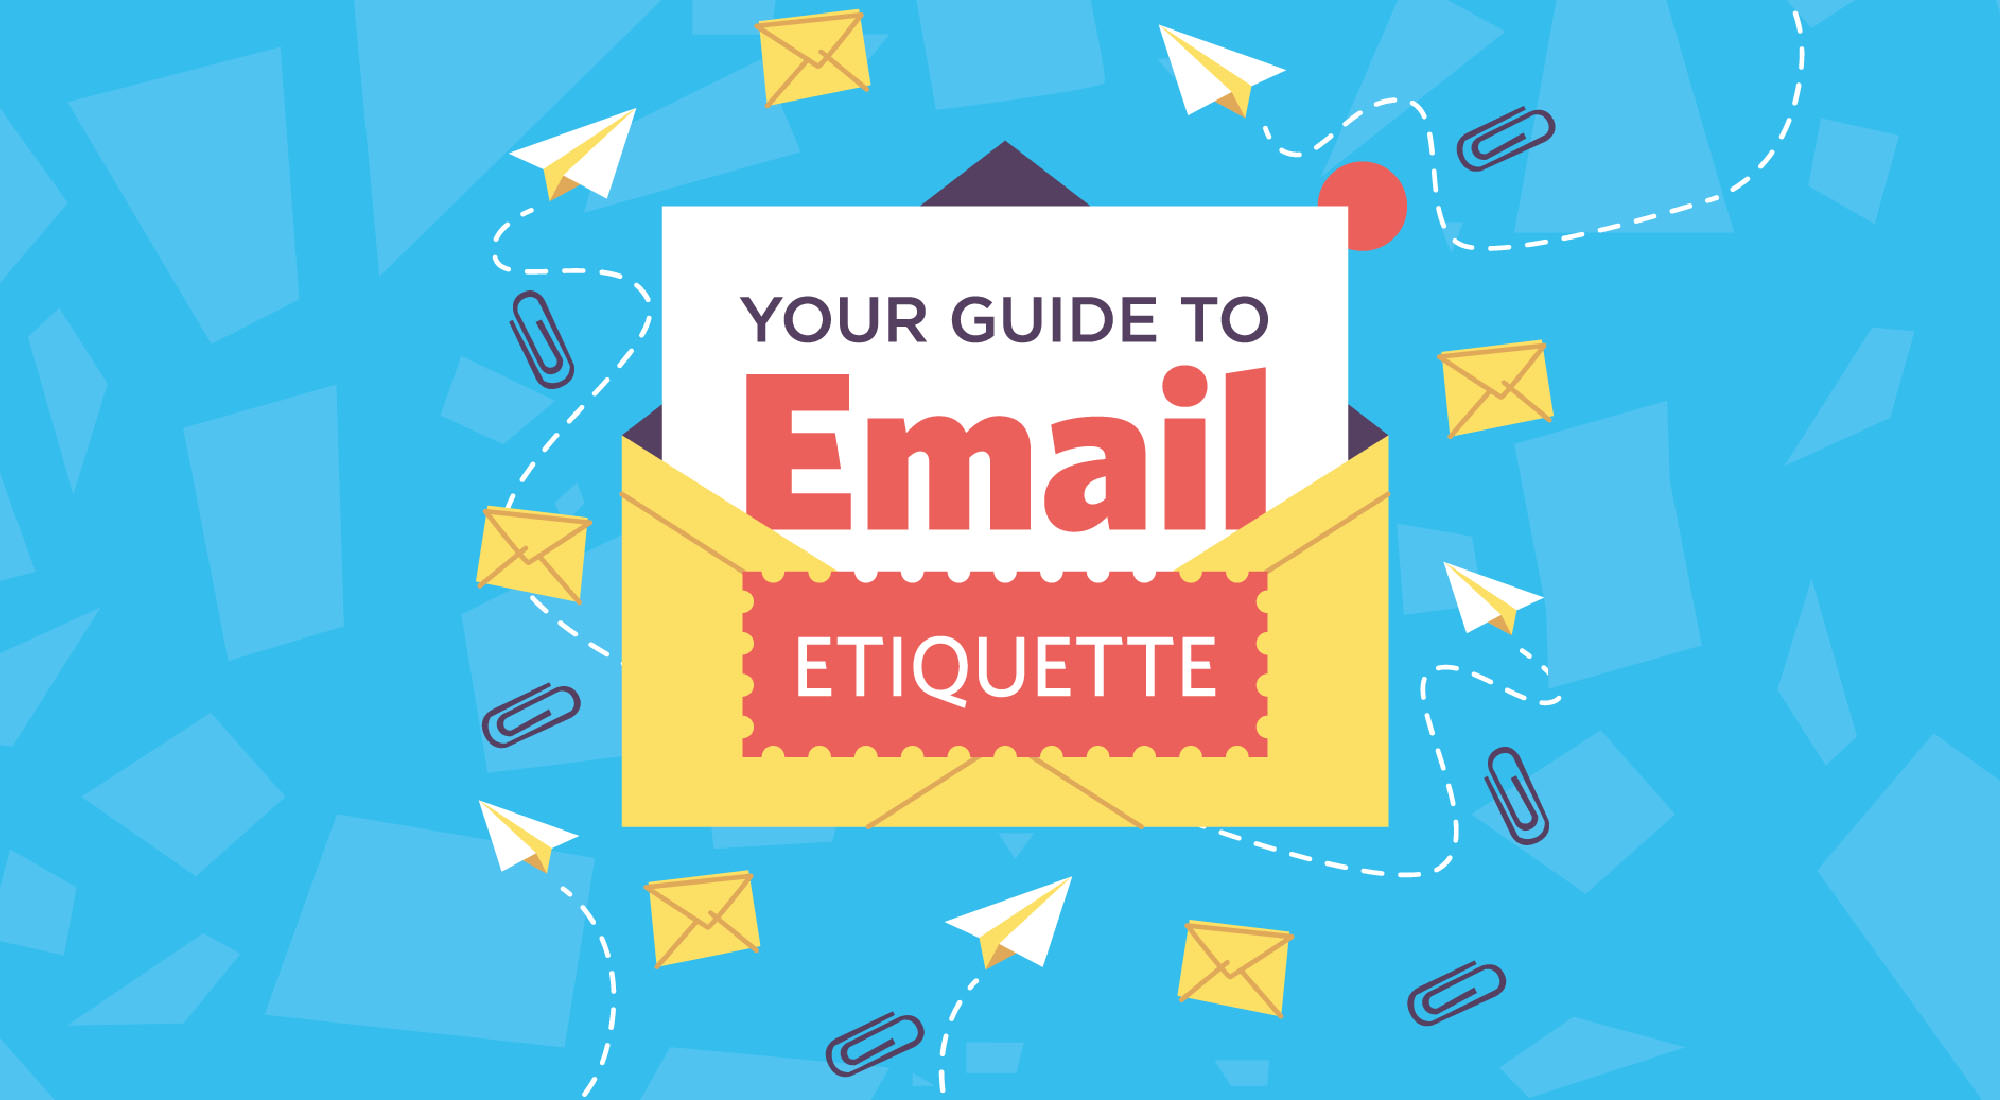 8 Dos and Don'ts of Business Email Etiquette